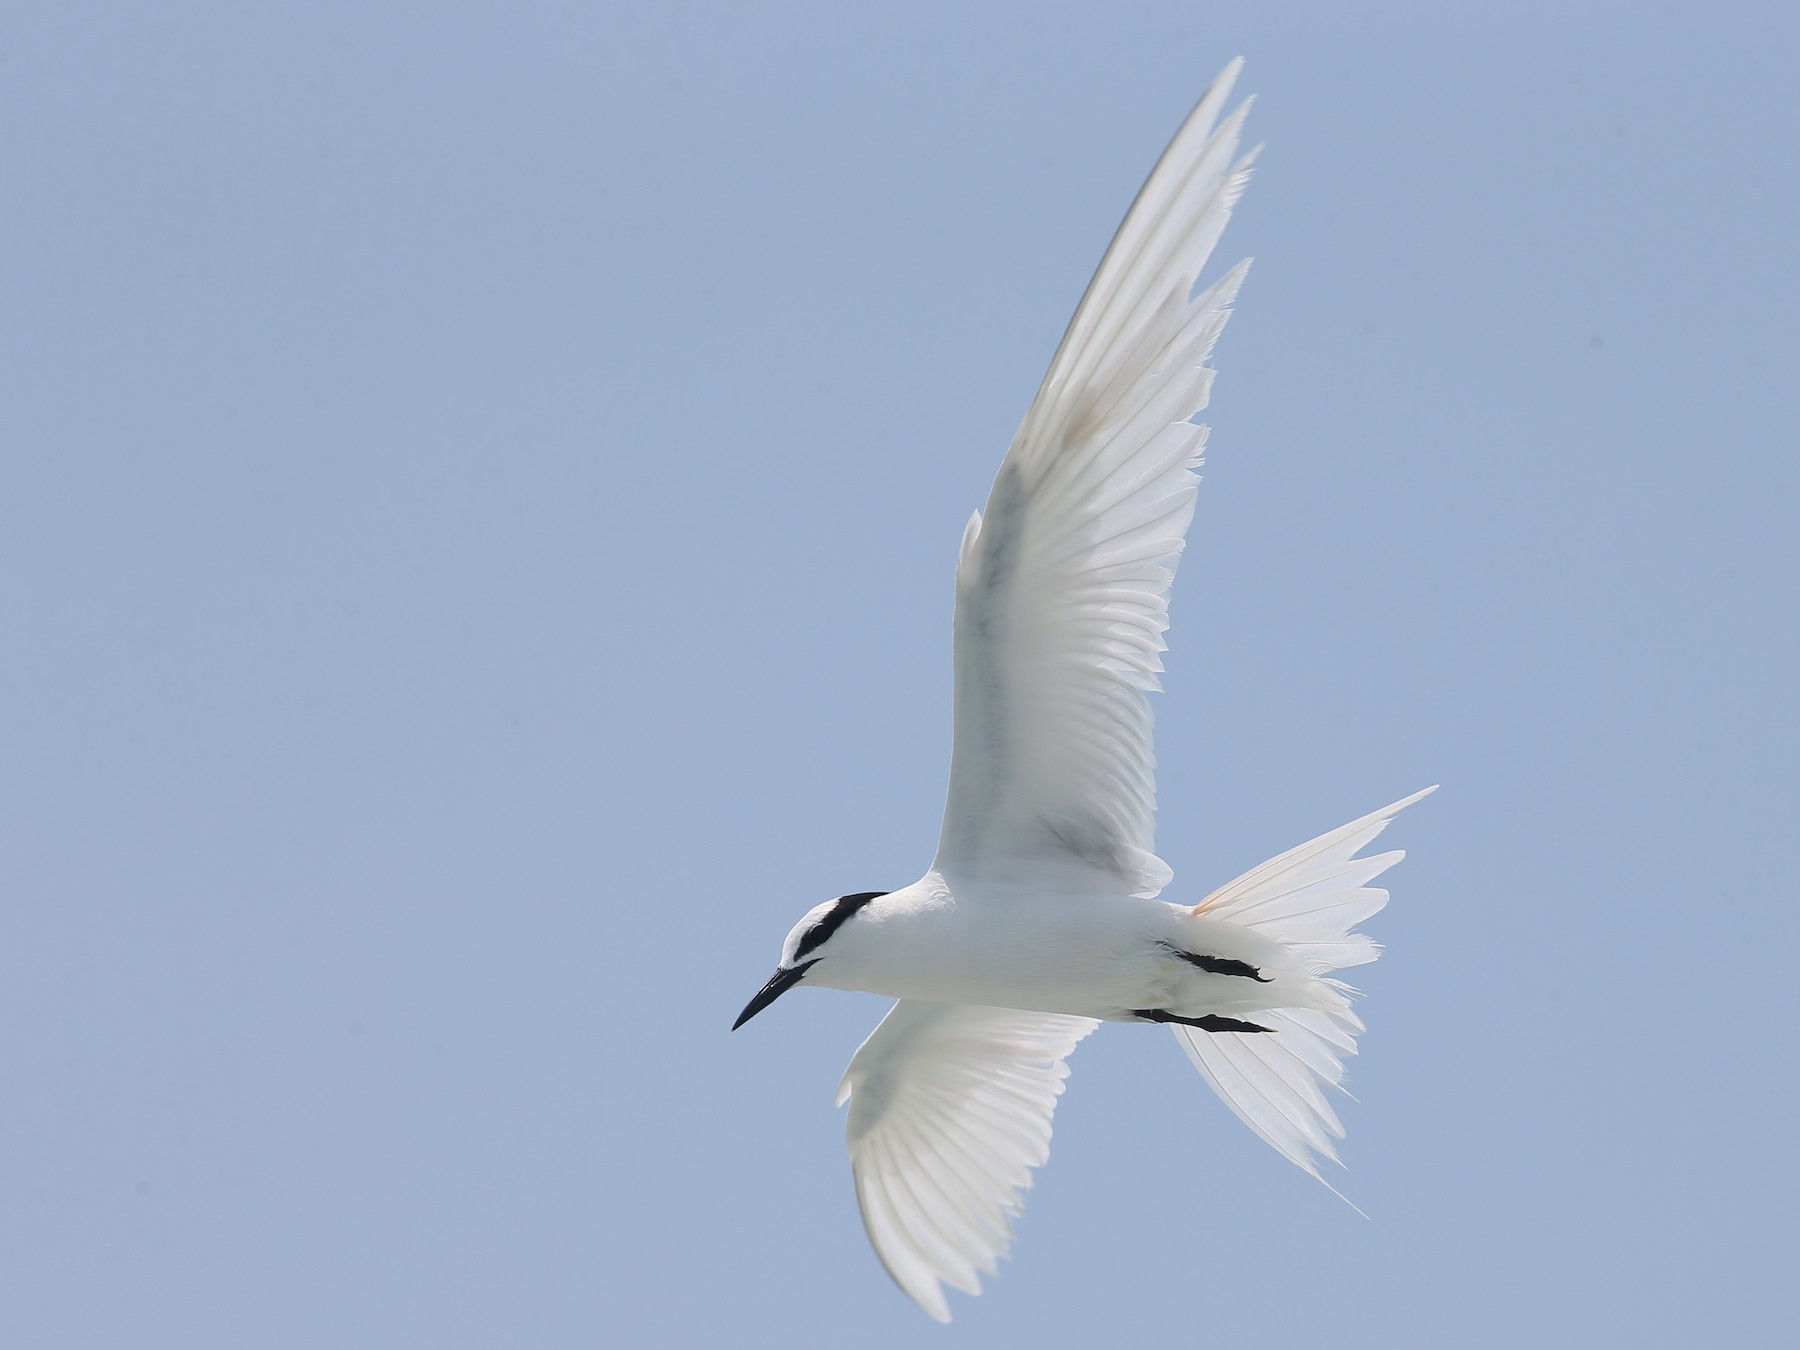 Black-naped Tern - Ting-Wei (廷維) HUNG (洪)